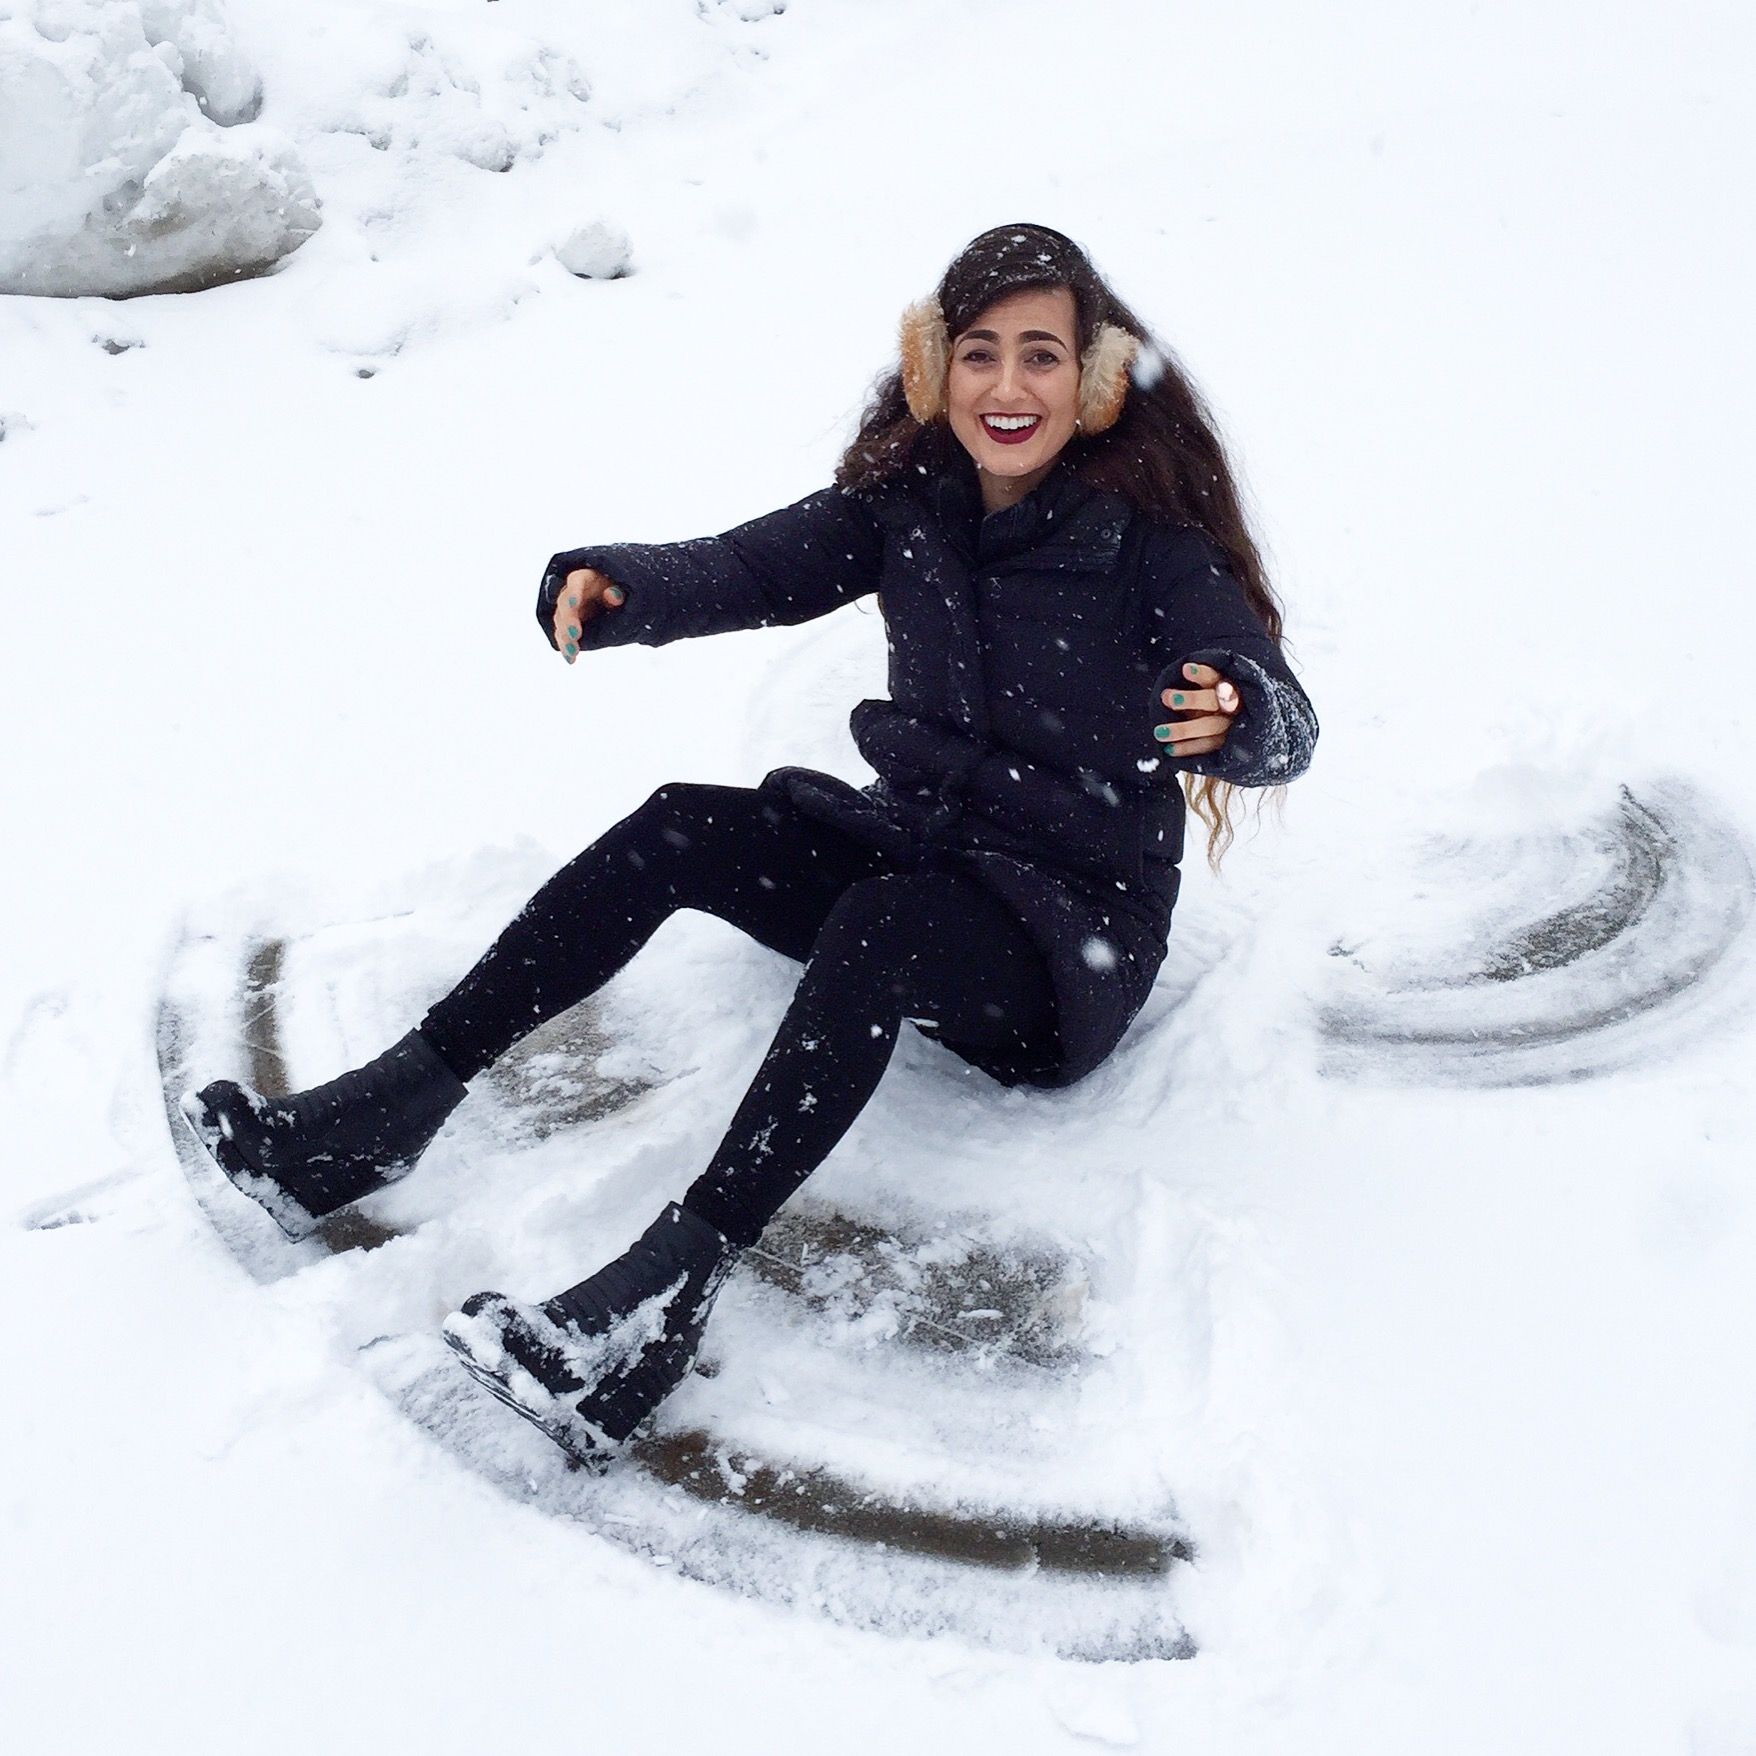 Funny Girl Playing in the Snow Making Snowmen